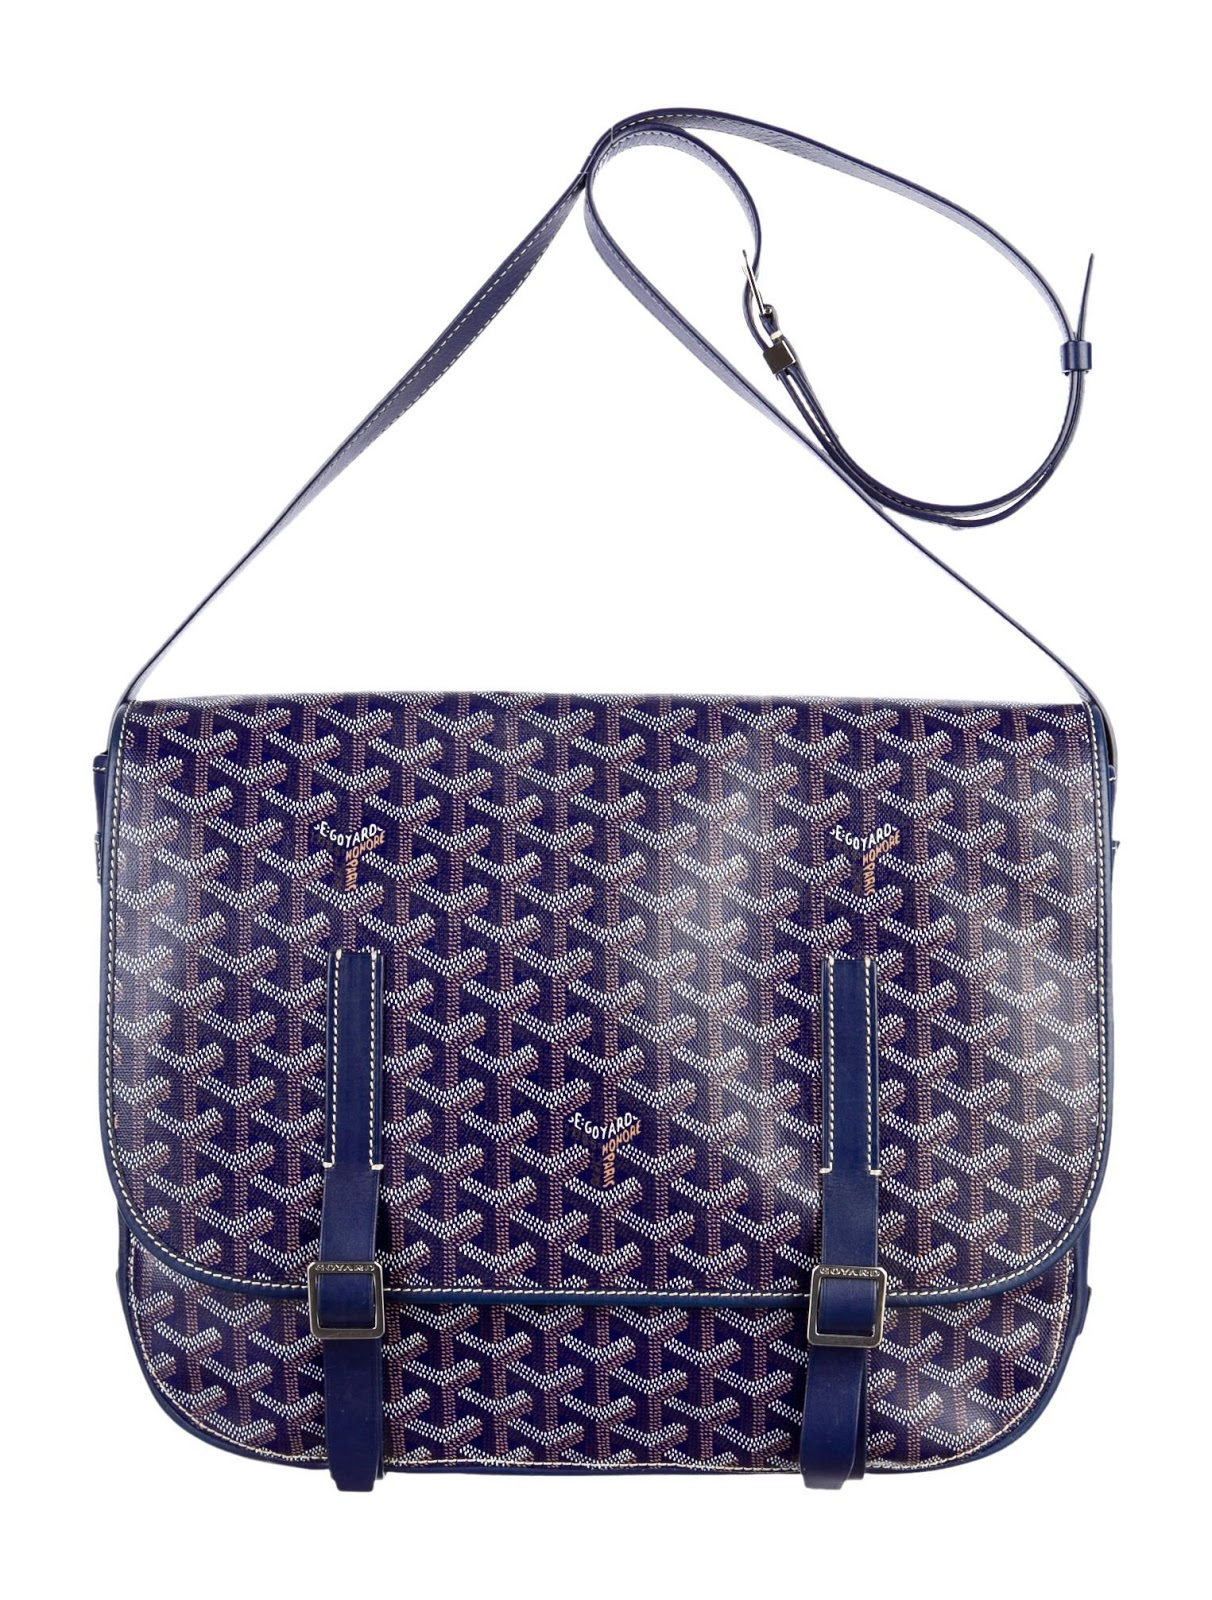 Color Craving The Goyard Belvedere Messenger Bag Beeh Adventures